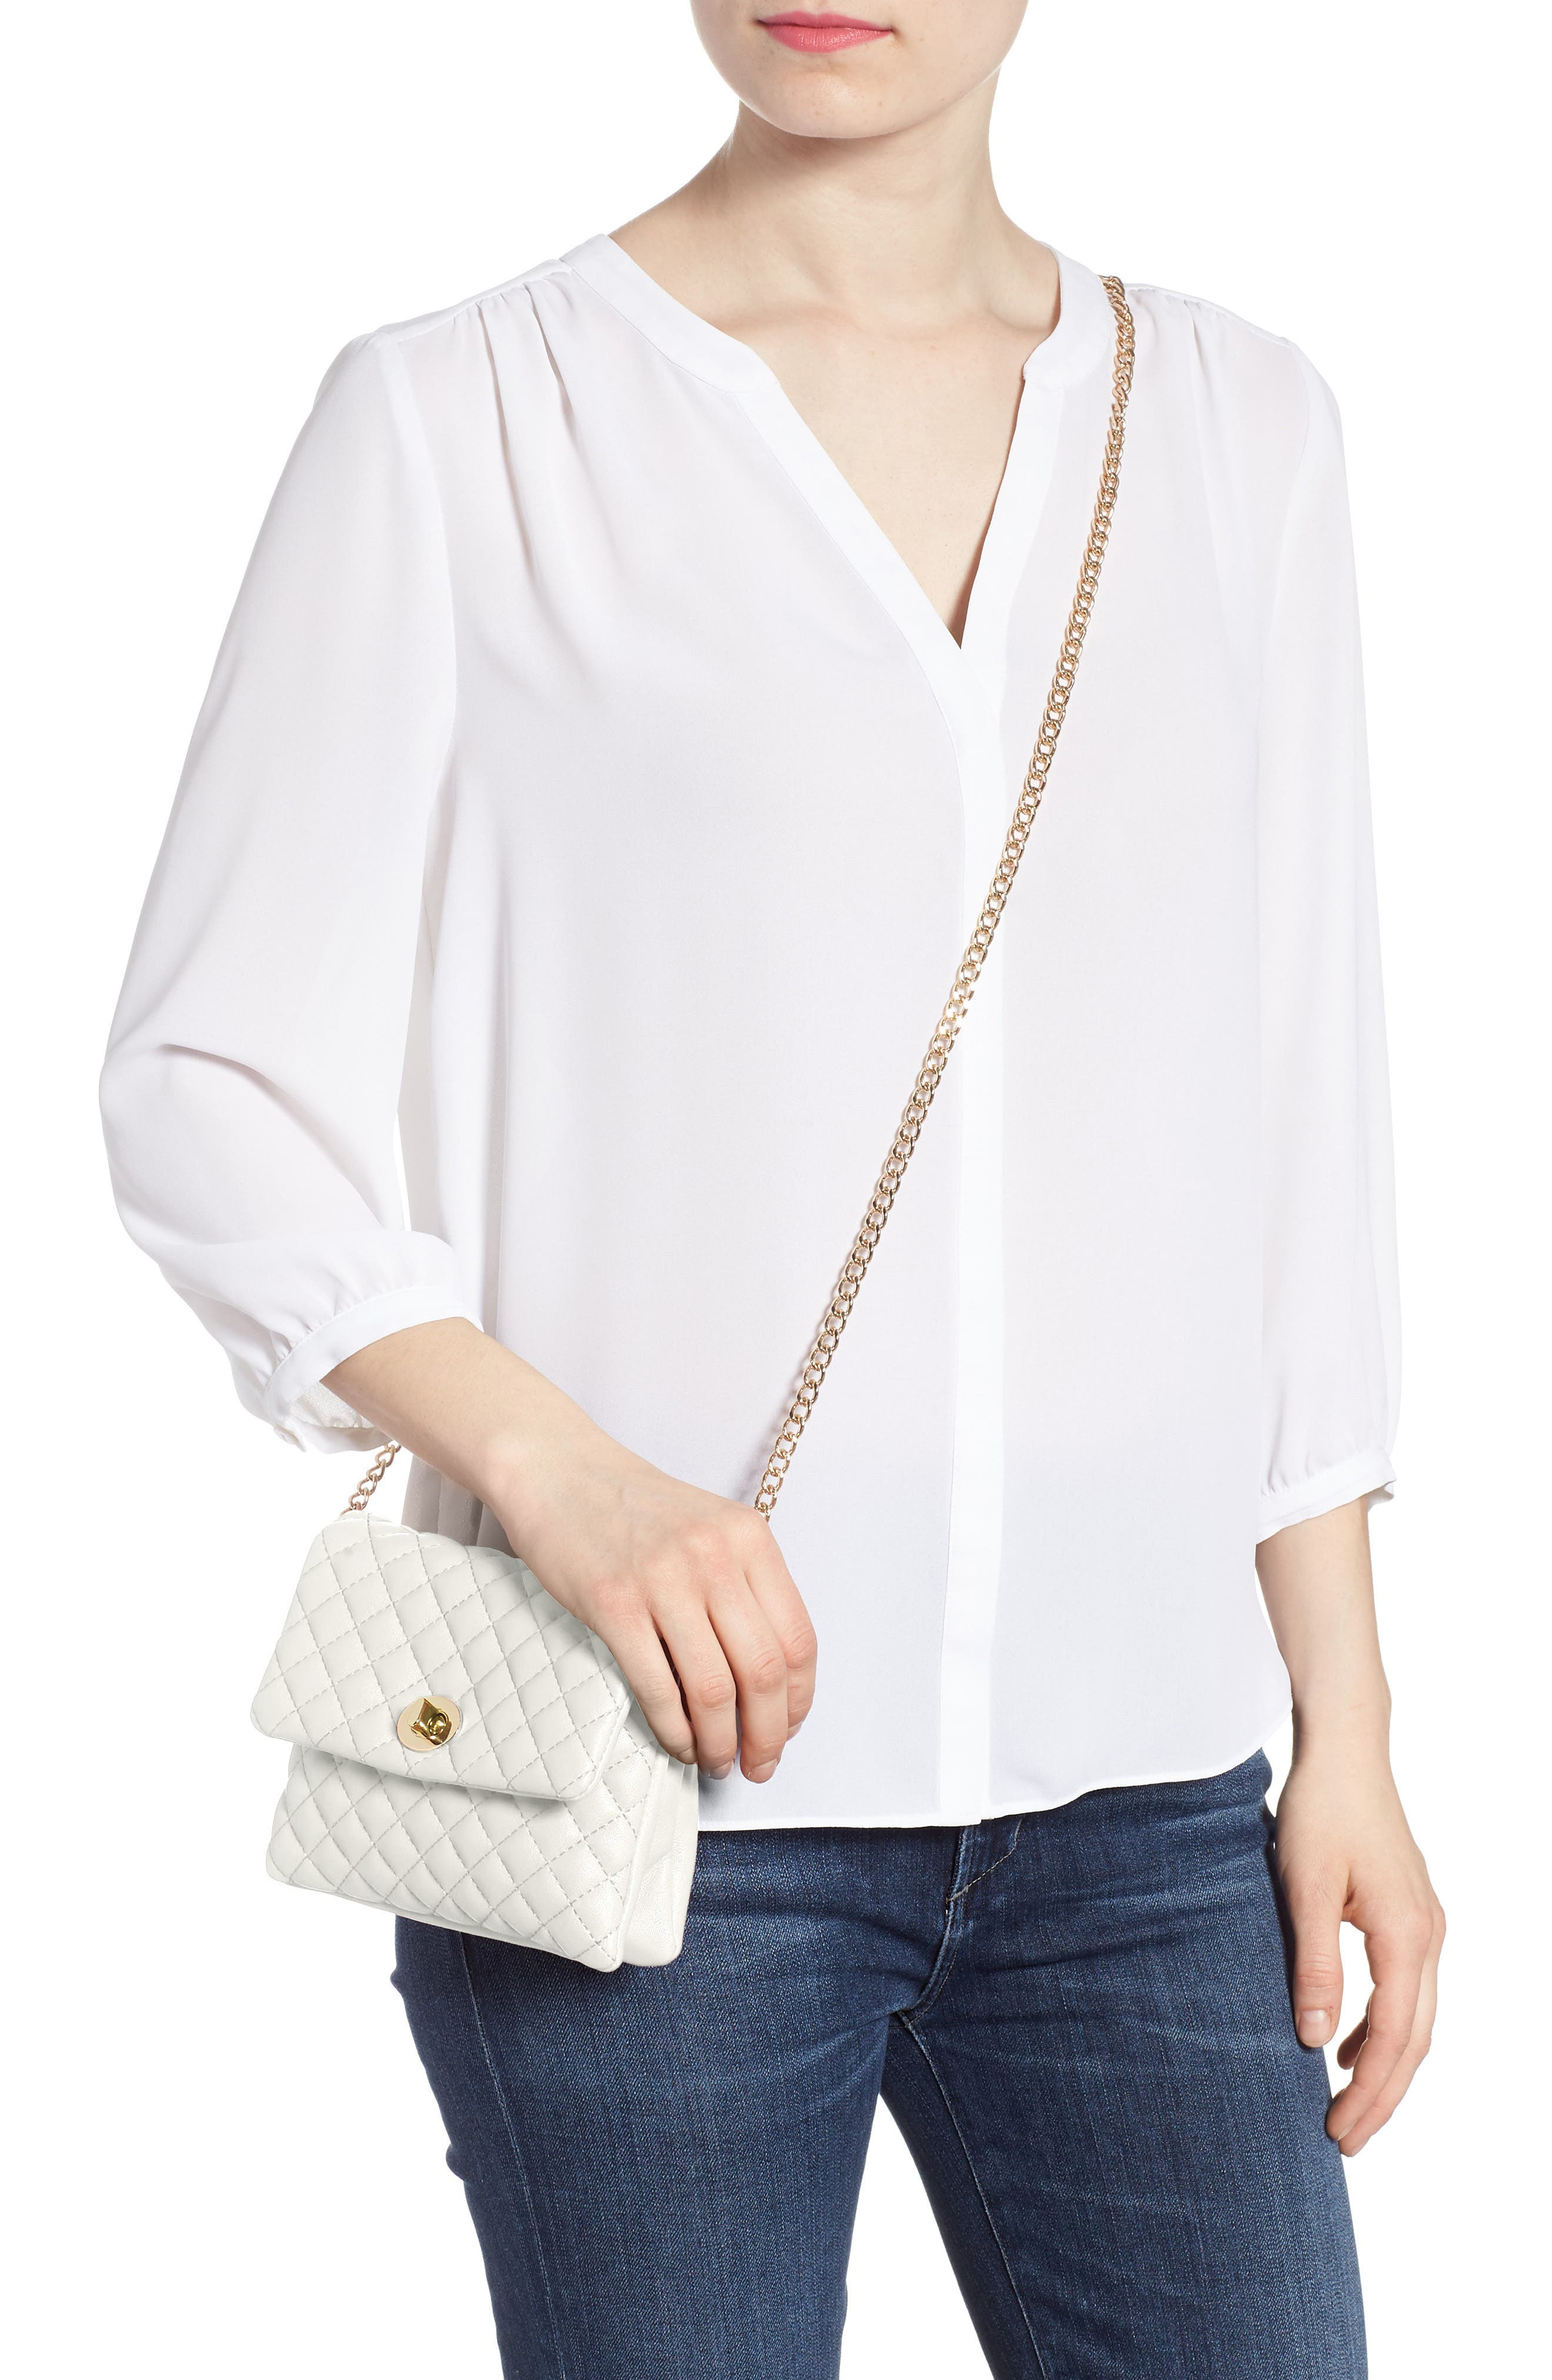 Mali + Lili Quilted Vegan Leather Convertible Belt Bag,                             Alternate thumbnail 9, color,                             WHITE